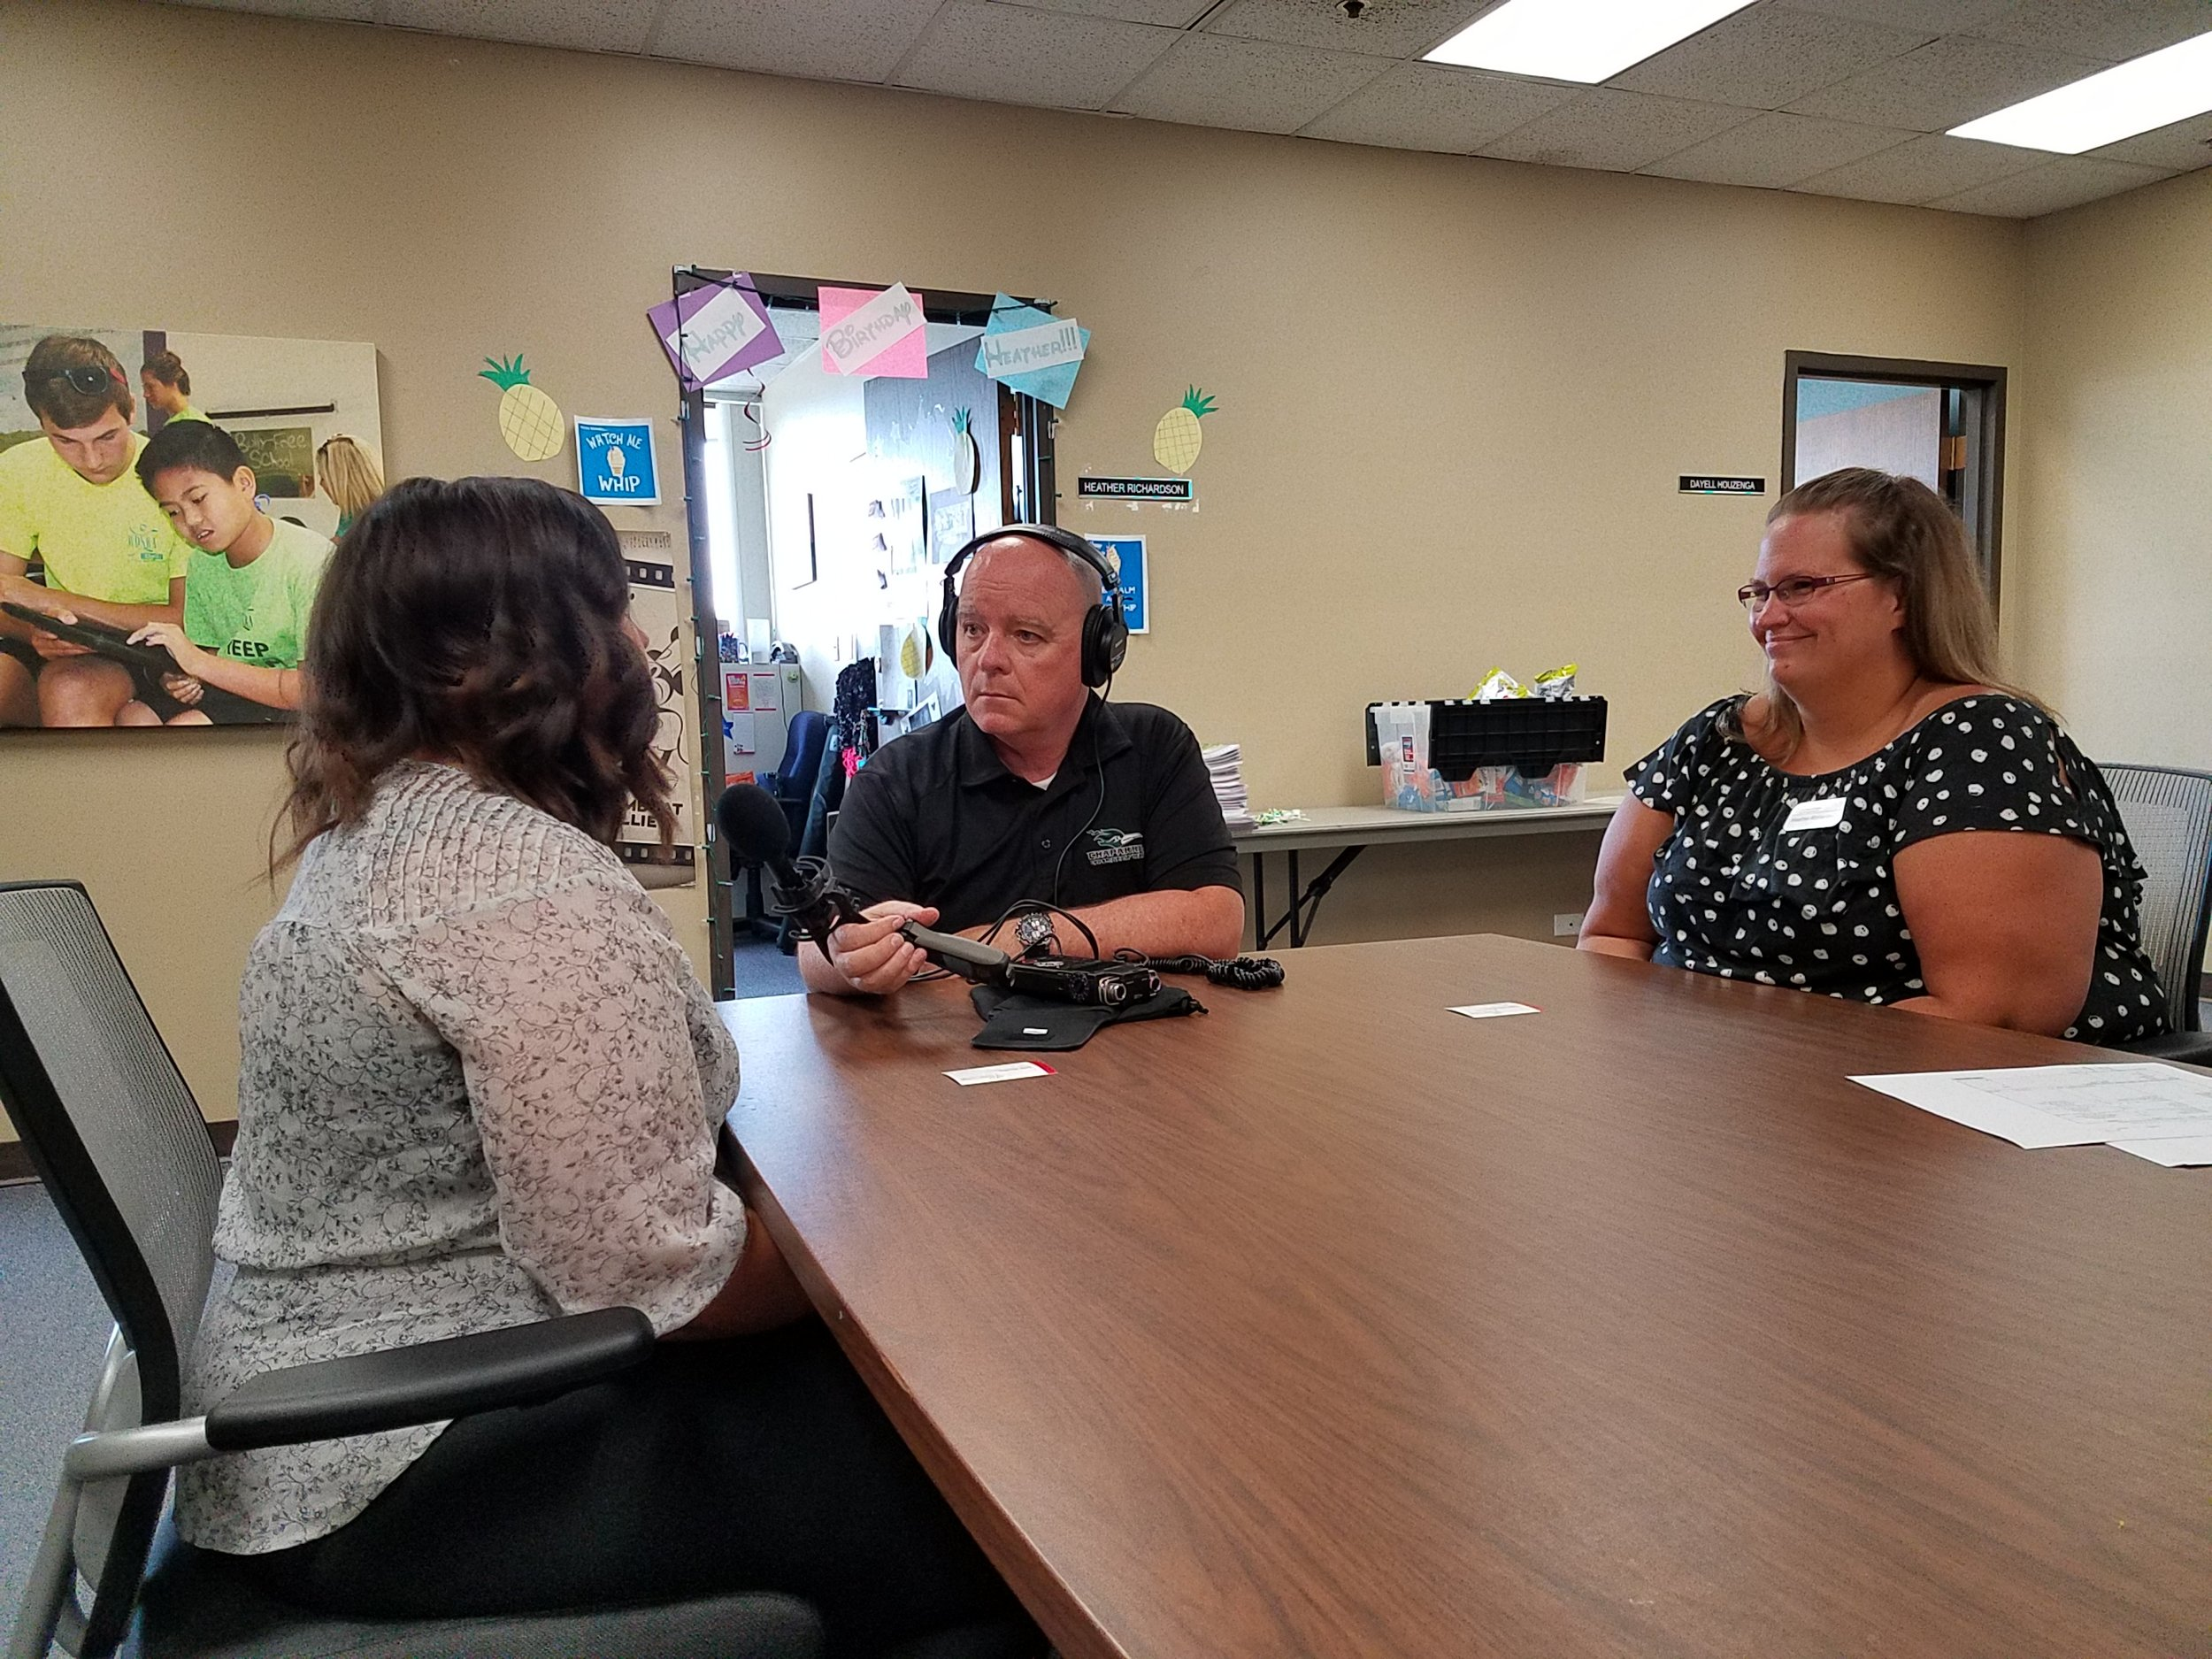 Western DuPage Special Recreation Association's Katie Weadly (left) and Heather Richardson (right) talked with First Light host Brian O'Keefe for this month's 'Doing Good' segment